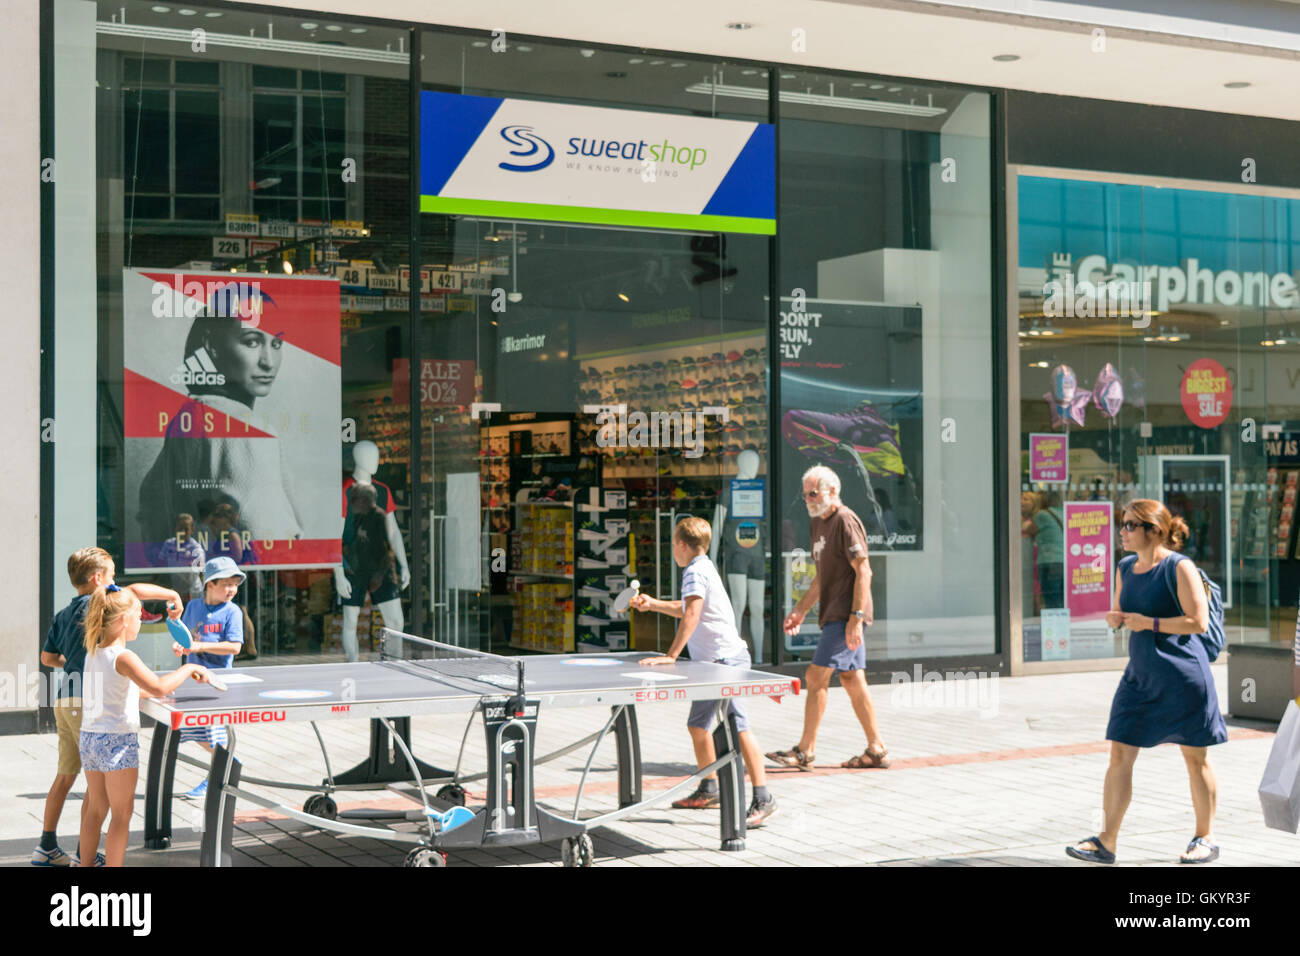 Exeter, Devon, United Kingdom - August 23, 2016: Table tennis players in front of Sweatshop store in Exeter. - Stock Image